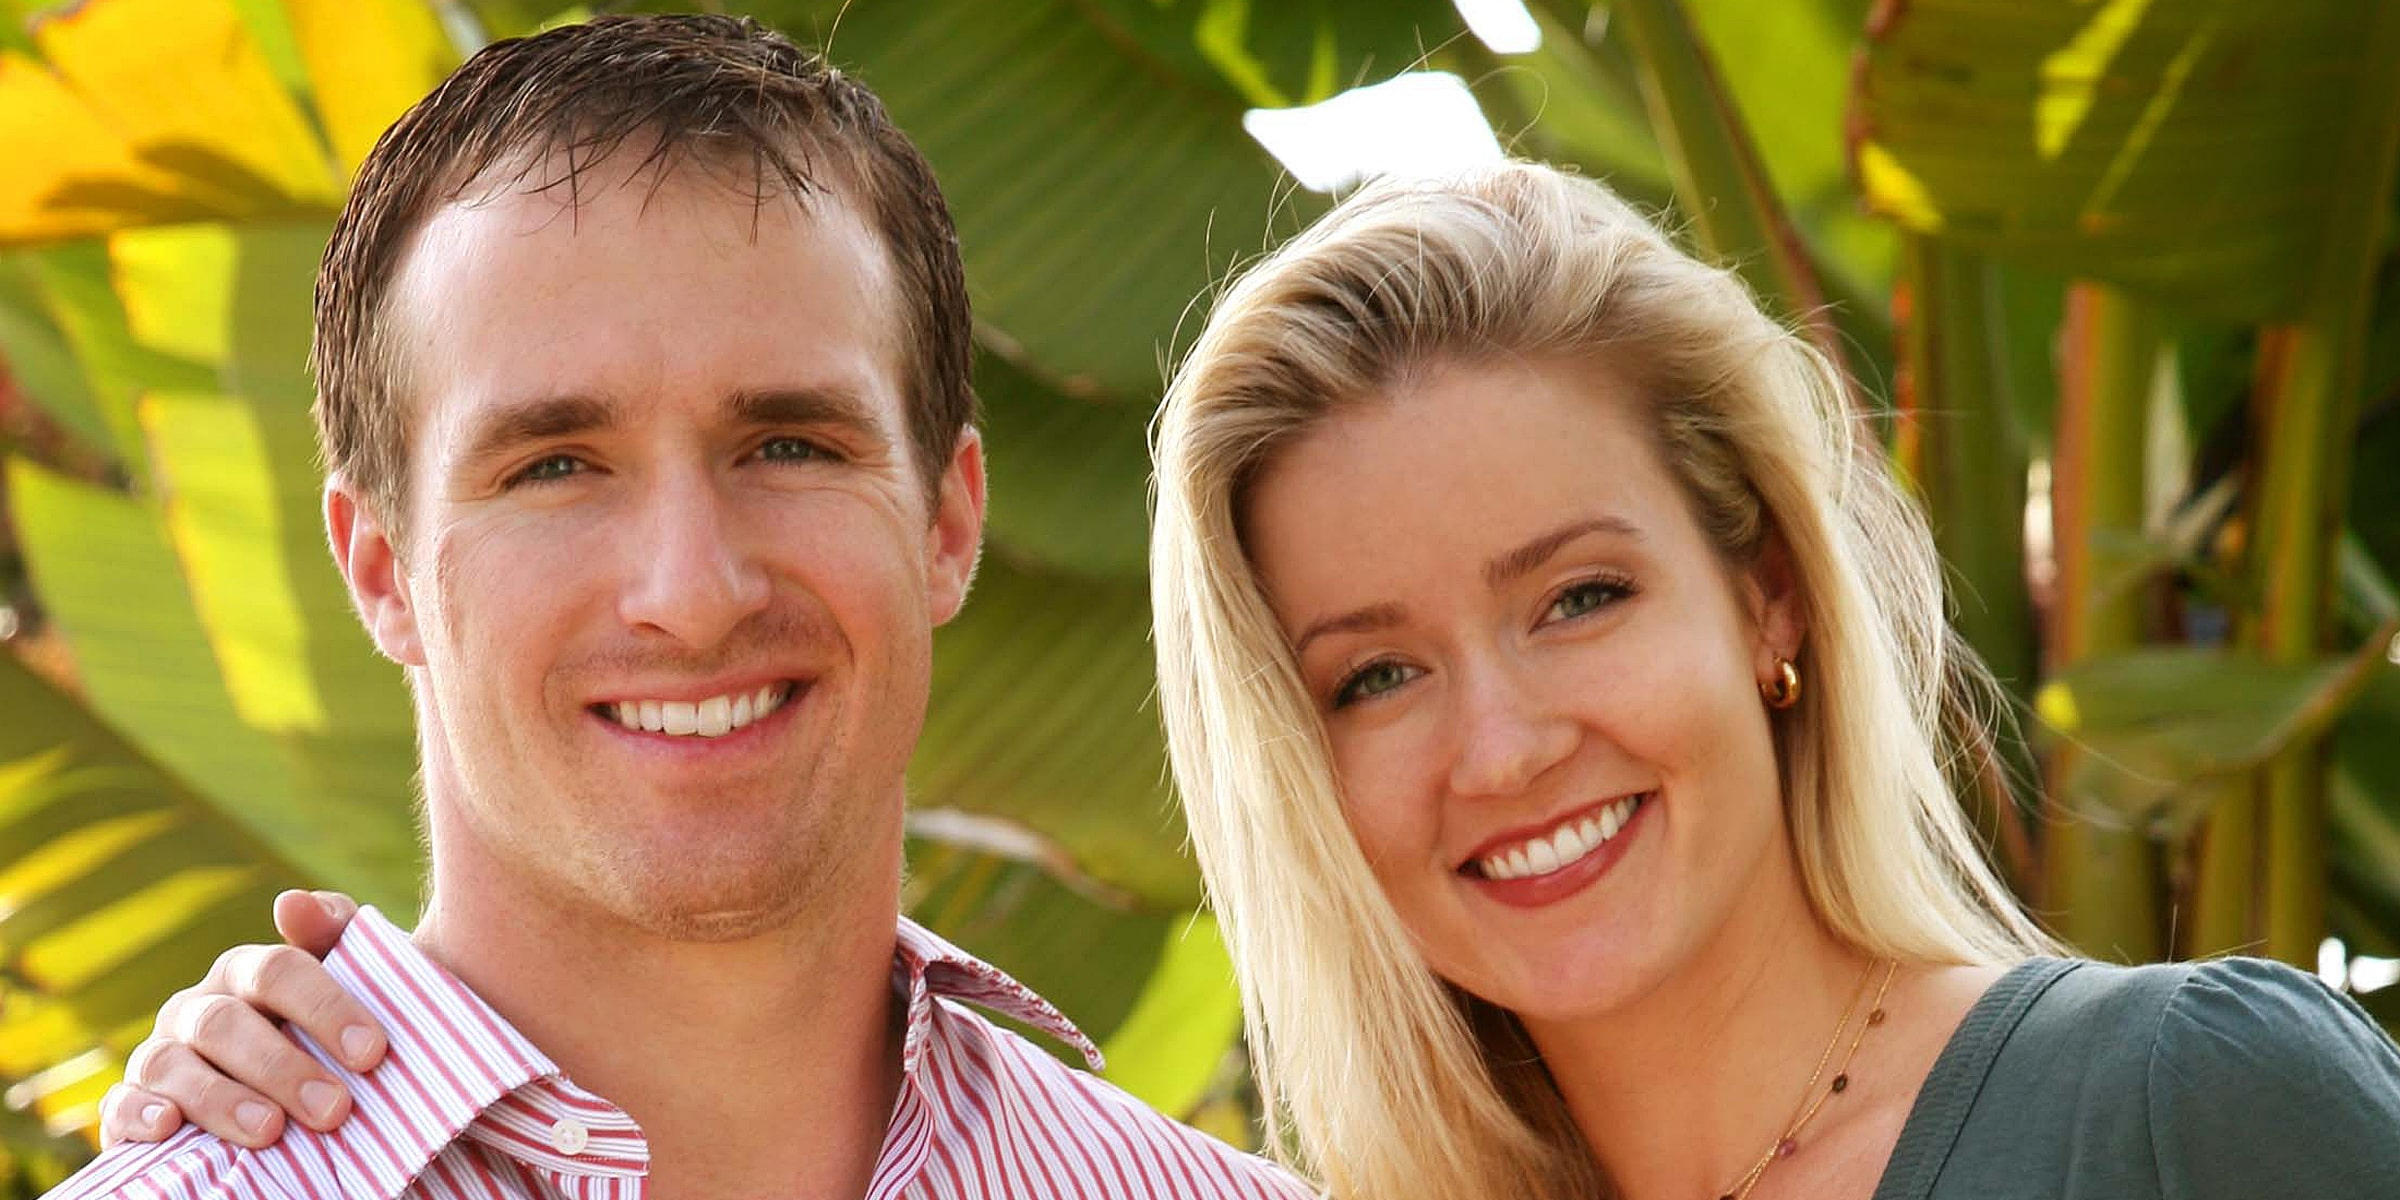 Drew Brees Wife Brittany Brees Bio Age Net Worth Parents Hometown